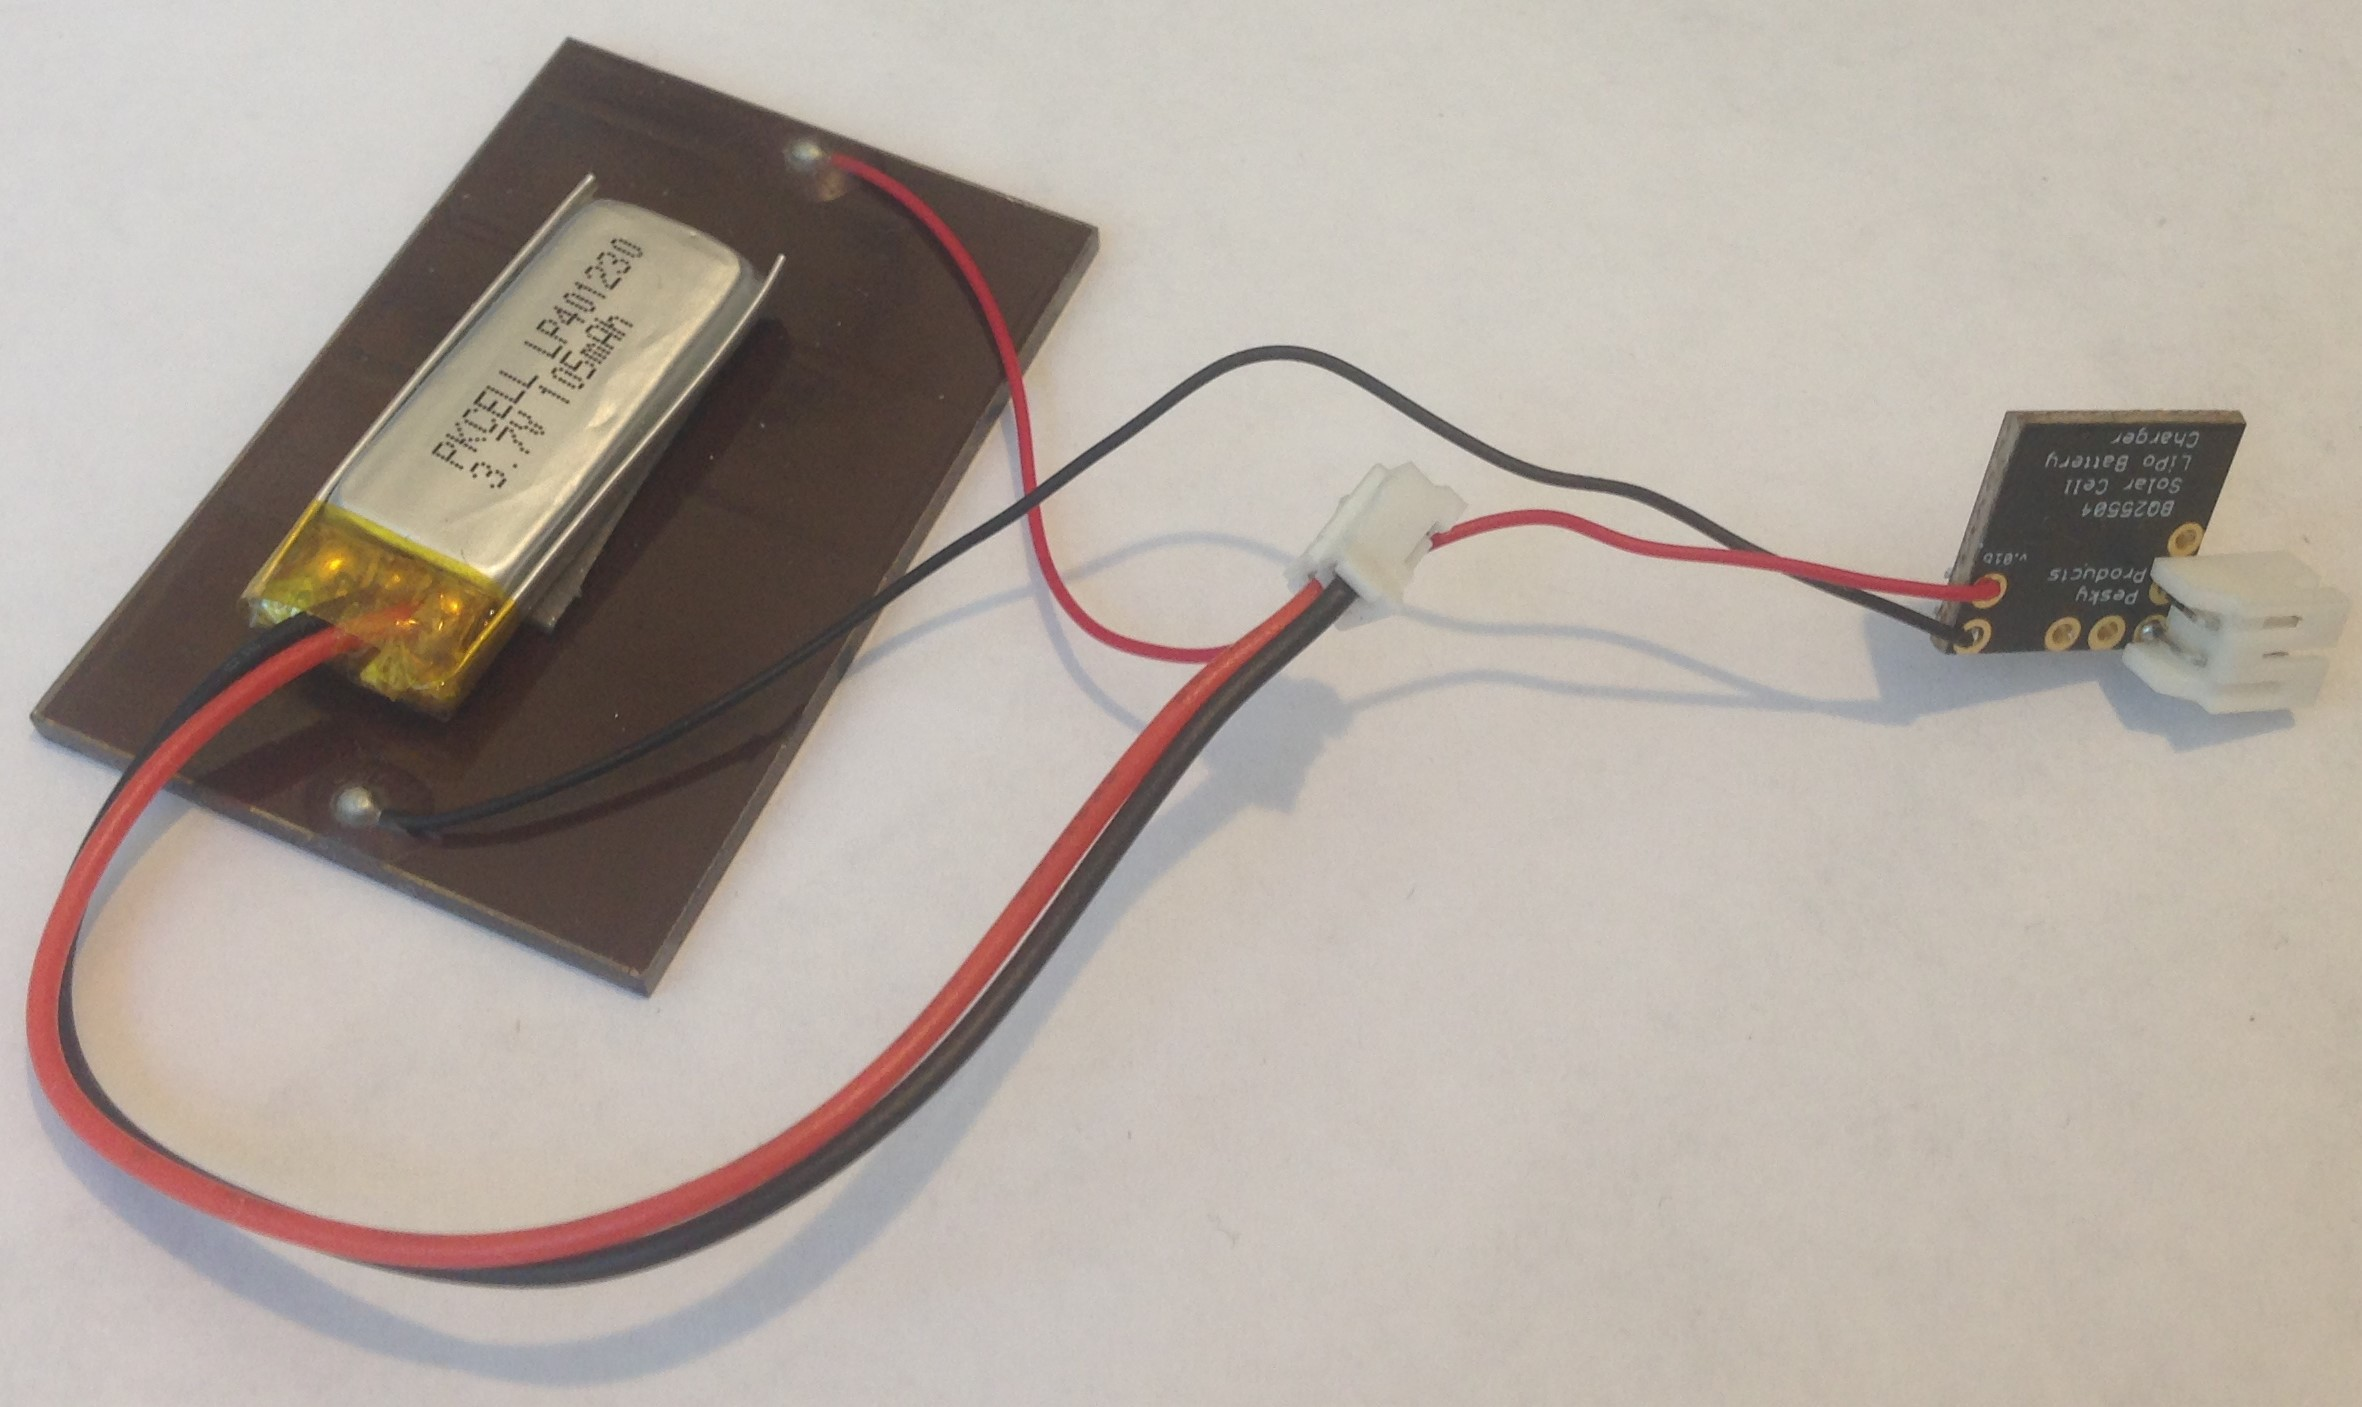 Ultra Low Power Lipo Charger Via Energy Harvesting Solar Battery Protector Prevents Excessive Discharge It Looks Like The Green Led Is Not Working I Have Found A Few Maybe 2 Of Boards This Problem Just My Luck Since Measured 415 V On